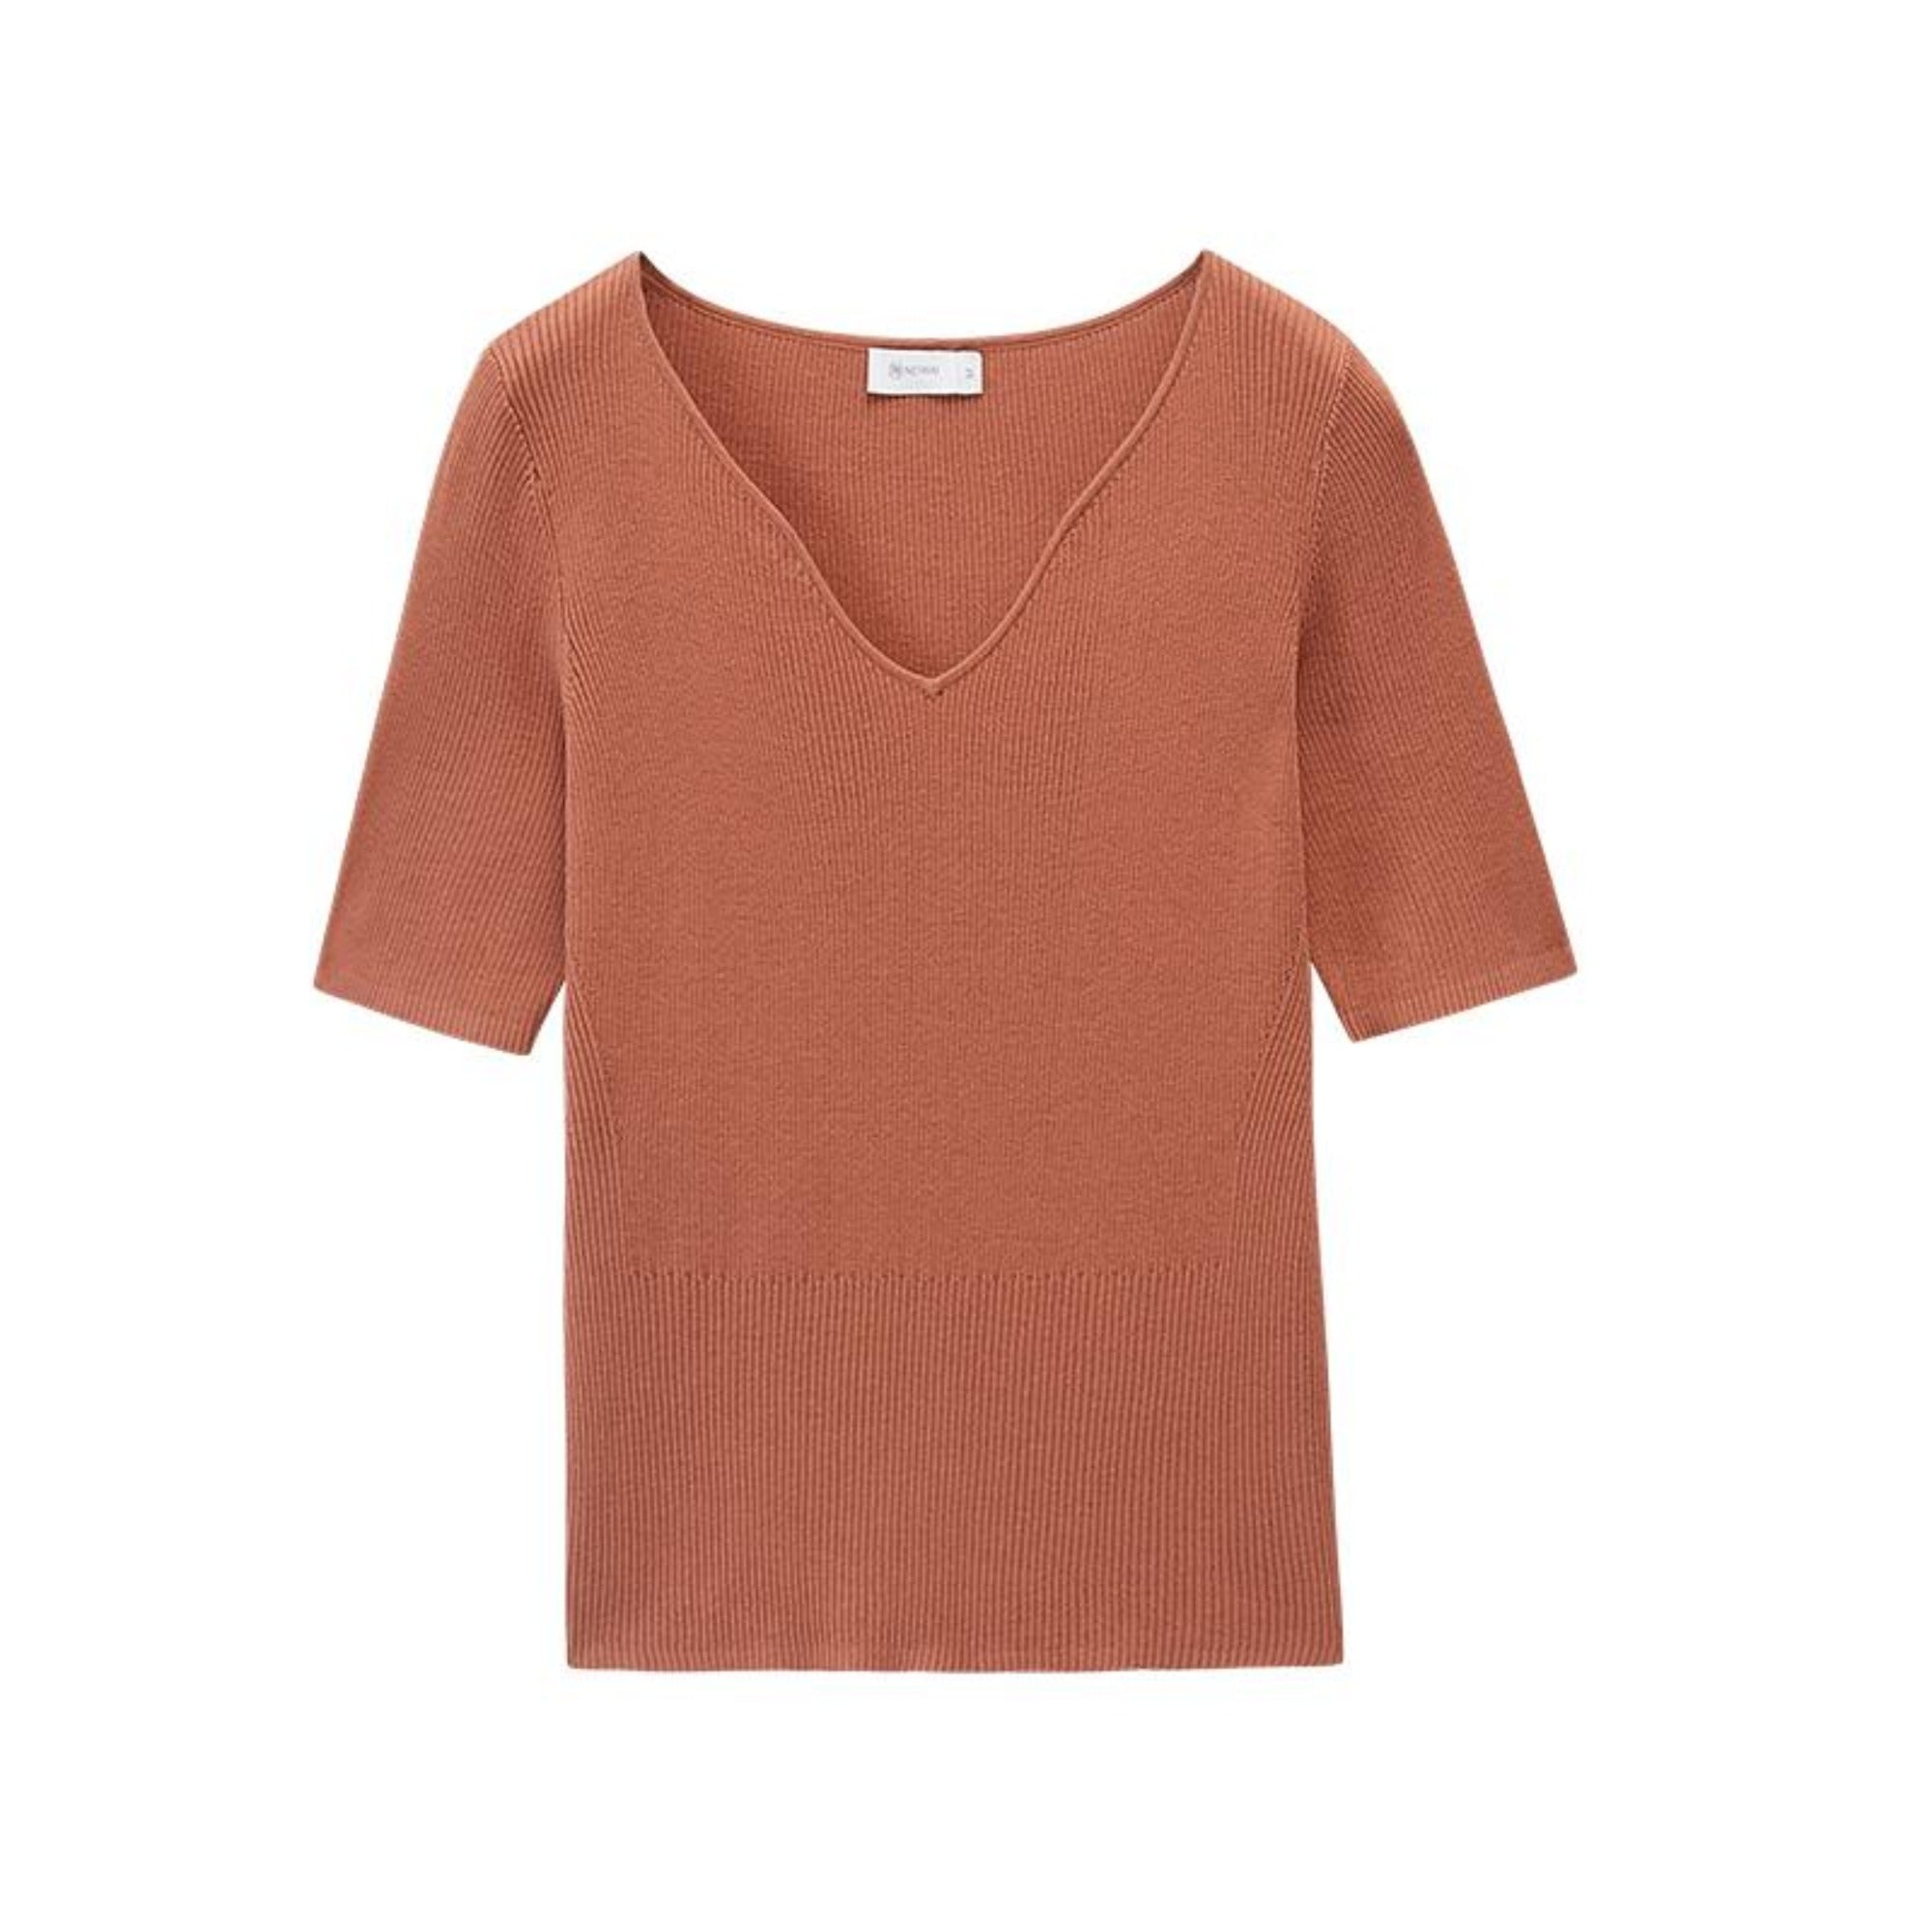 NEIWAI's Pure Simplicity Silk Blend V-neck Short Sleeve Top in Autumn Leaf.